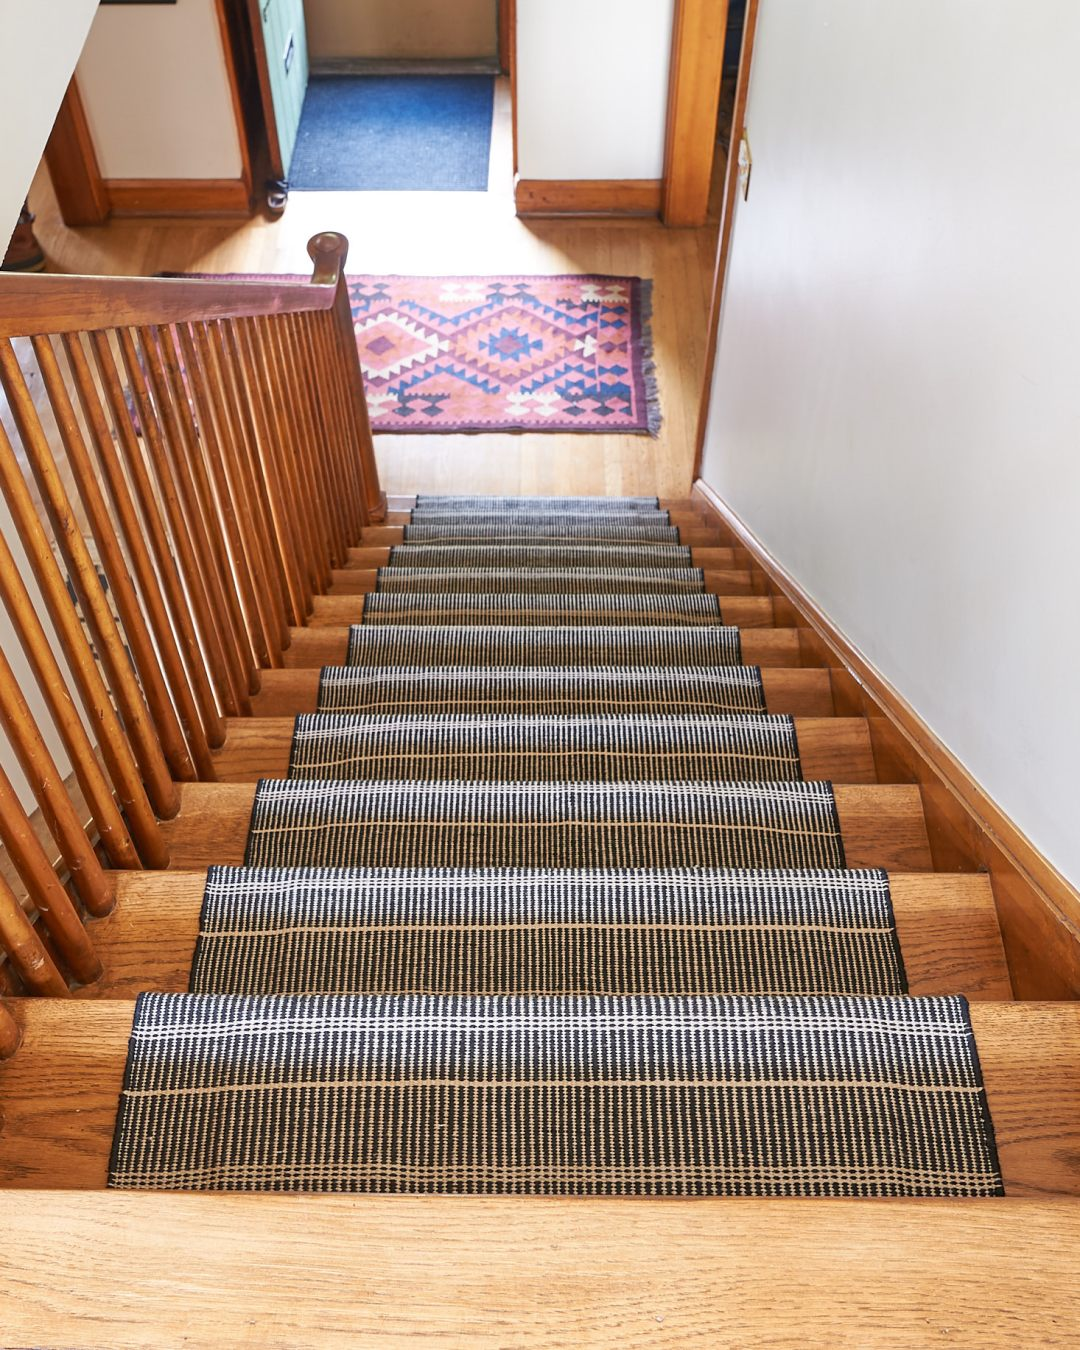 Stair runner view from top of stairs